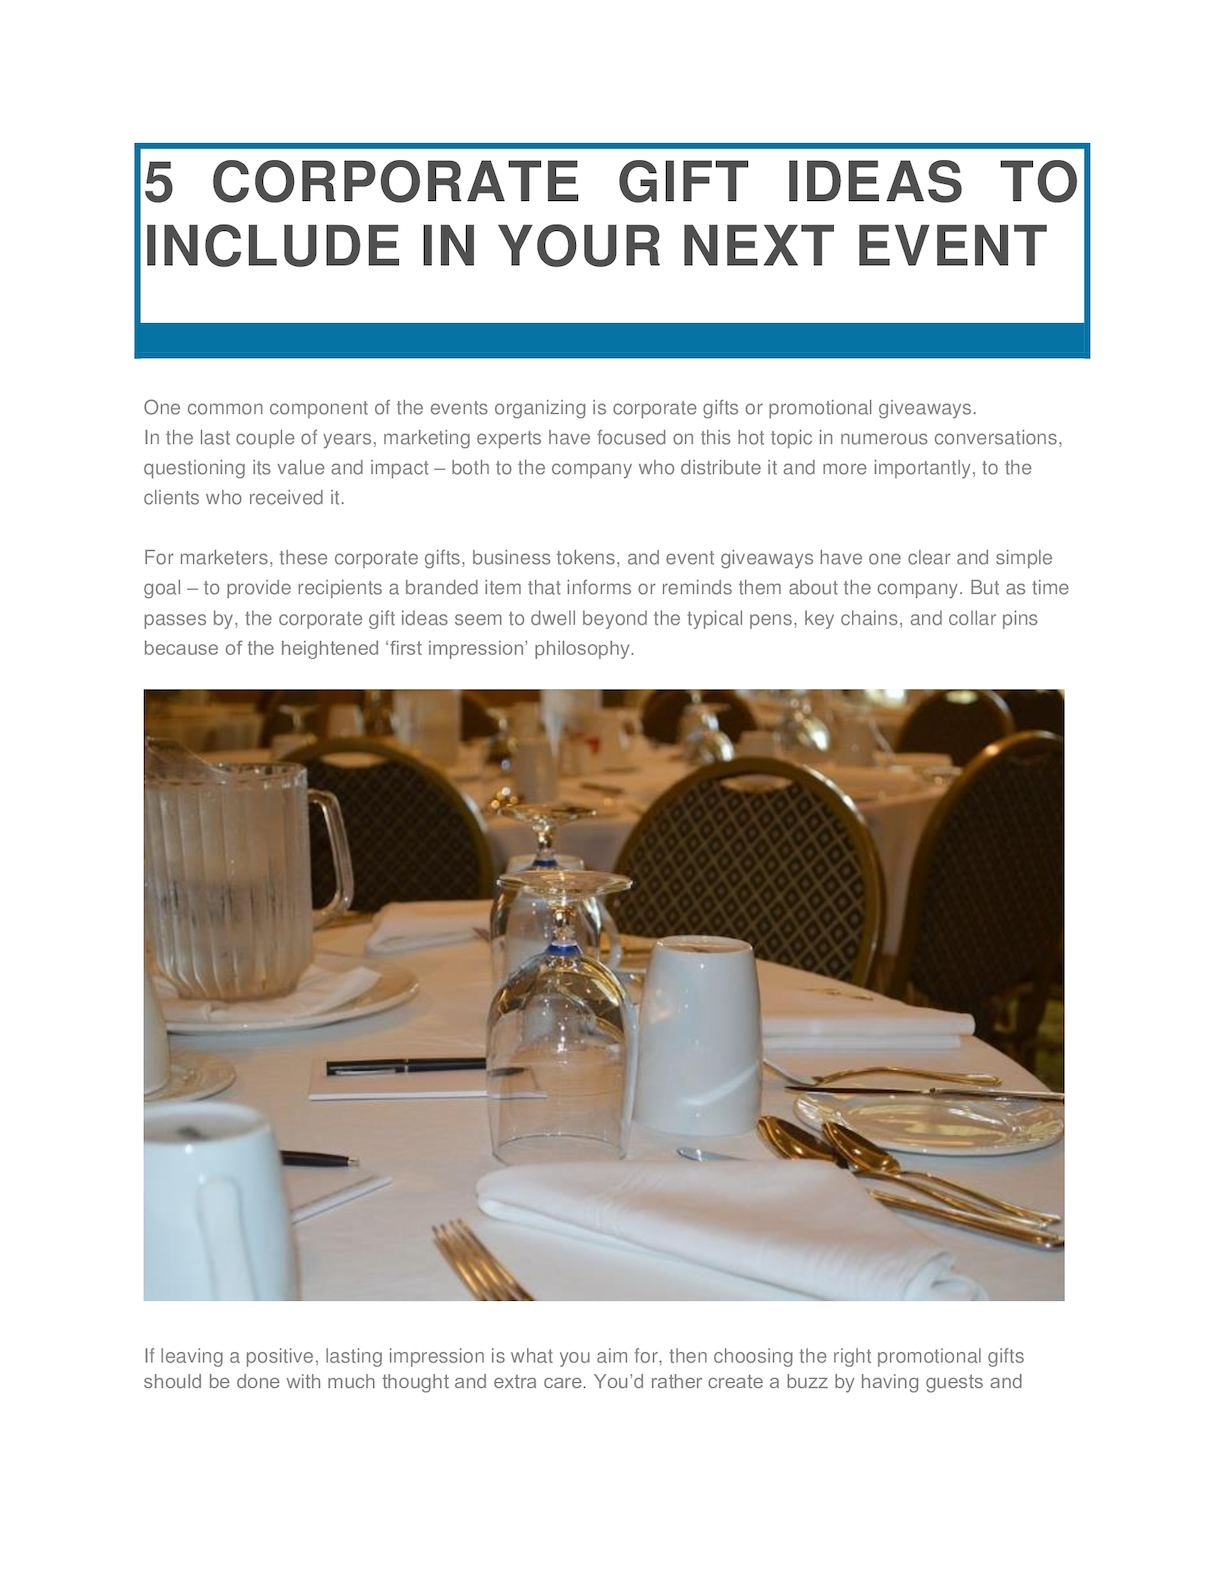 Calameo 5 Corporate Gift Ideas To Include In Your Next Event